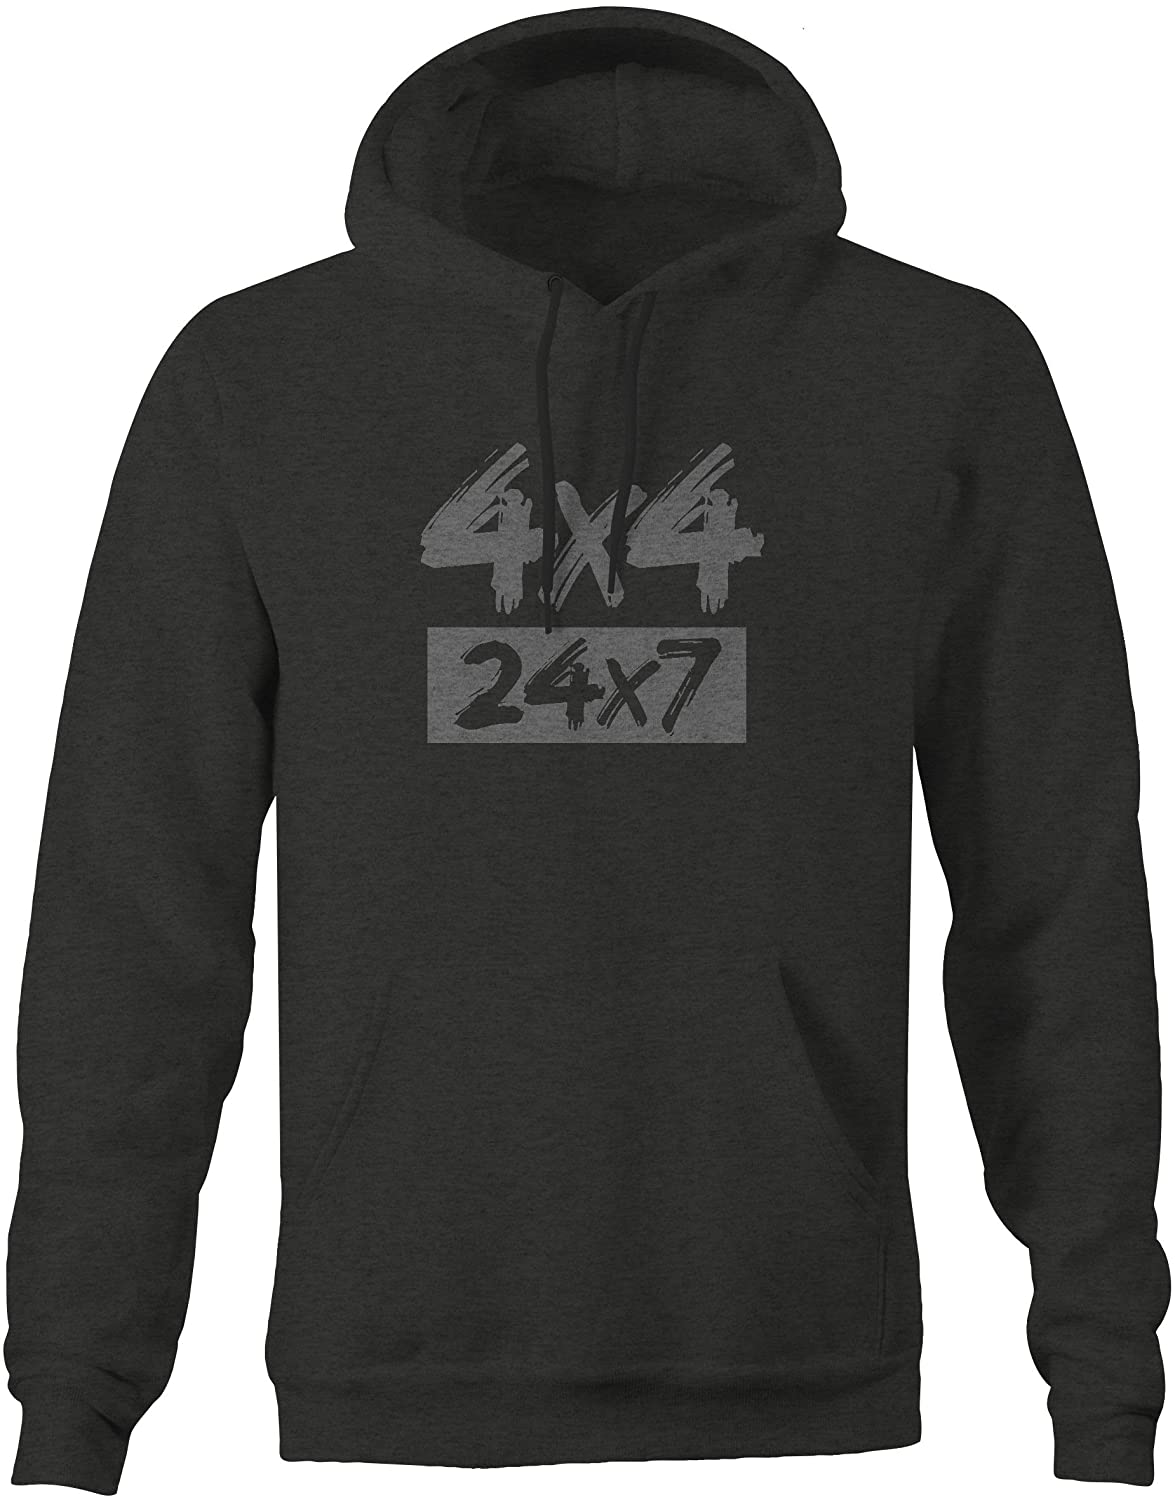 Lifestyle Graphix Stealth 4XL Take Your Top Off /& Get Dirty Jeep 4x4 Sweatshirt